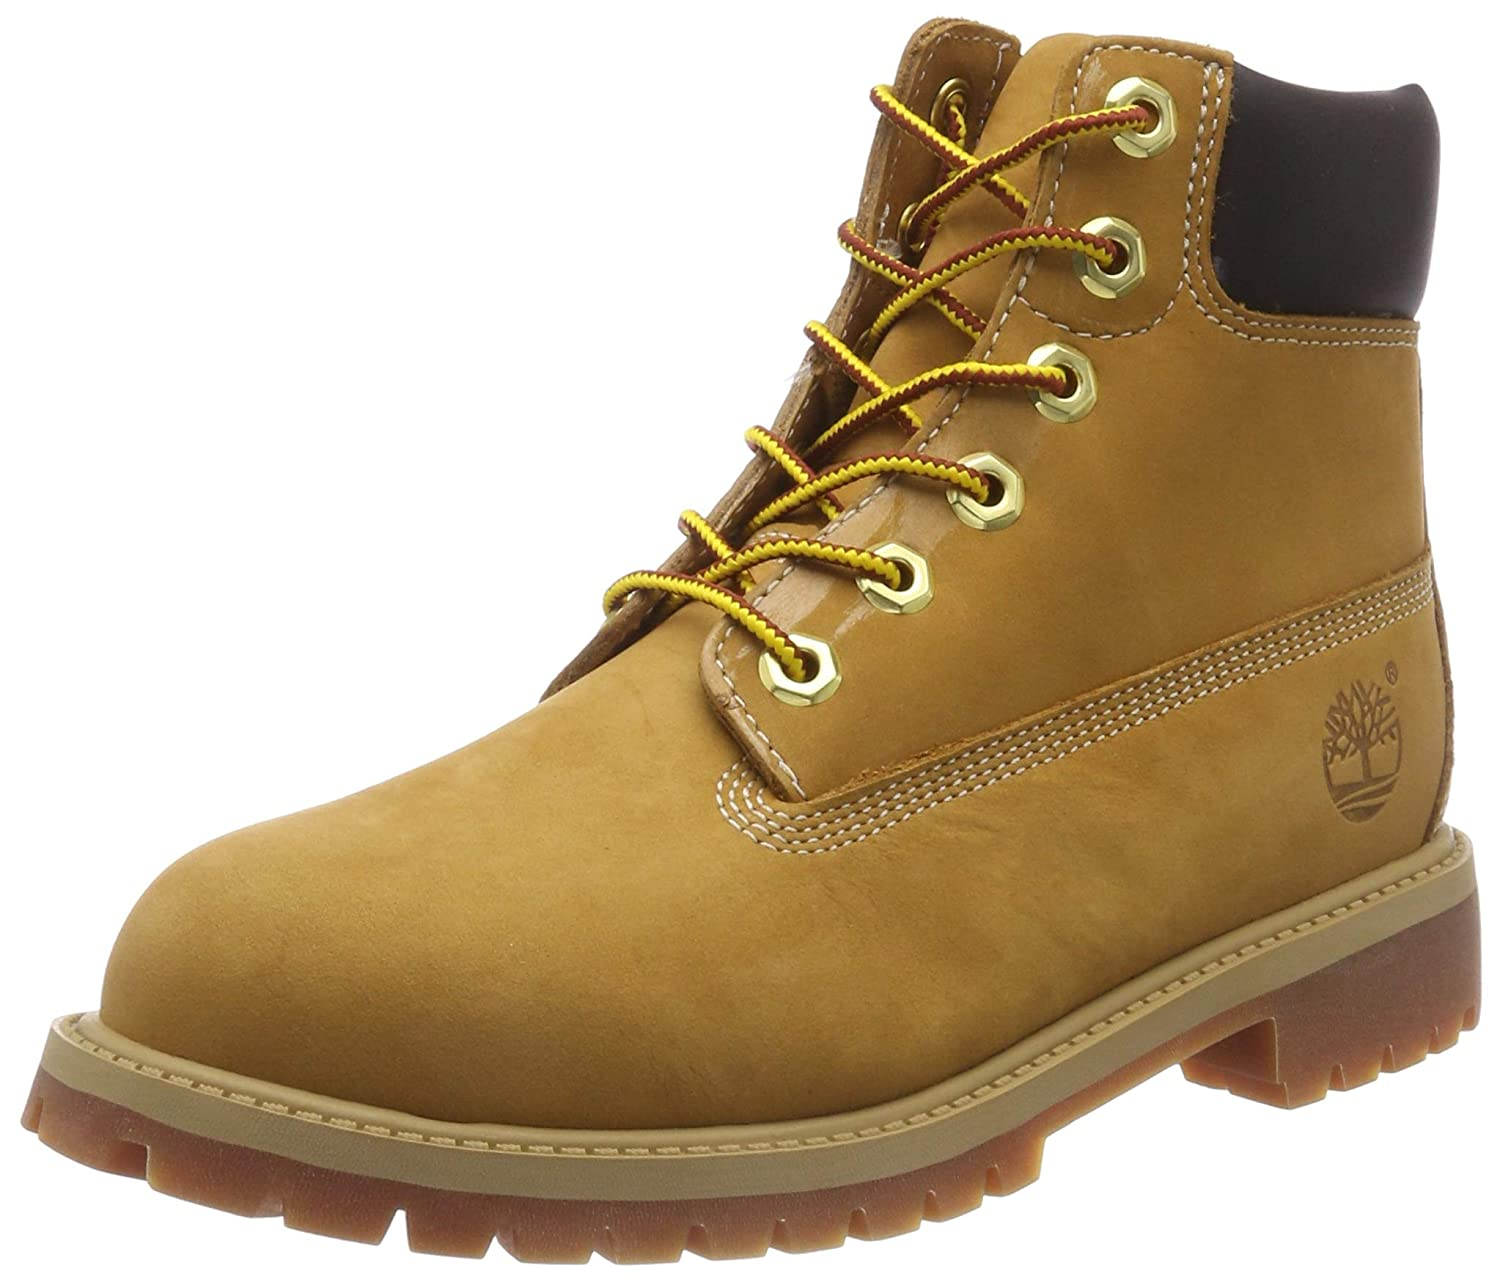 Timberland TB012909713 Youth's 6-in Premium WP Boot Wheat Nubuck 6 W US